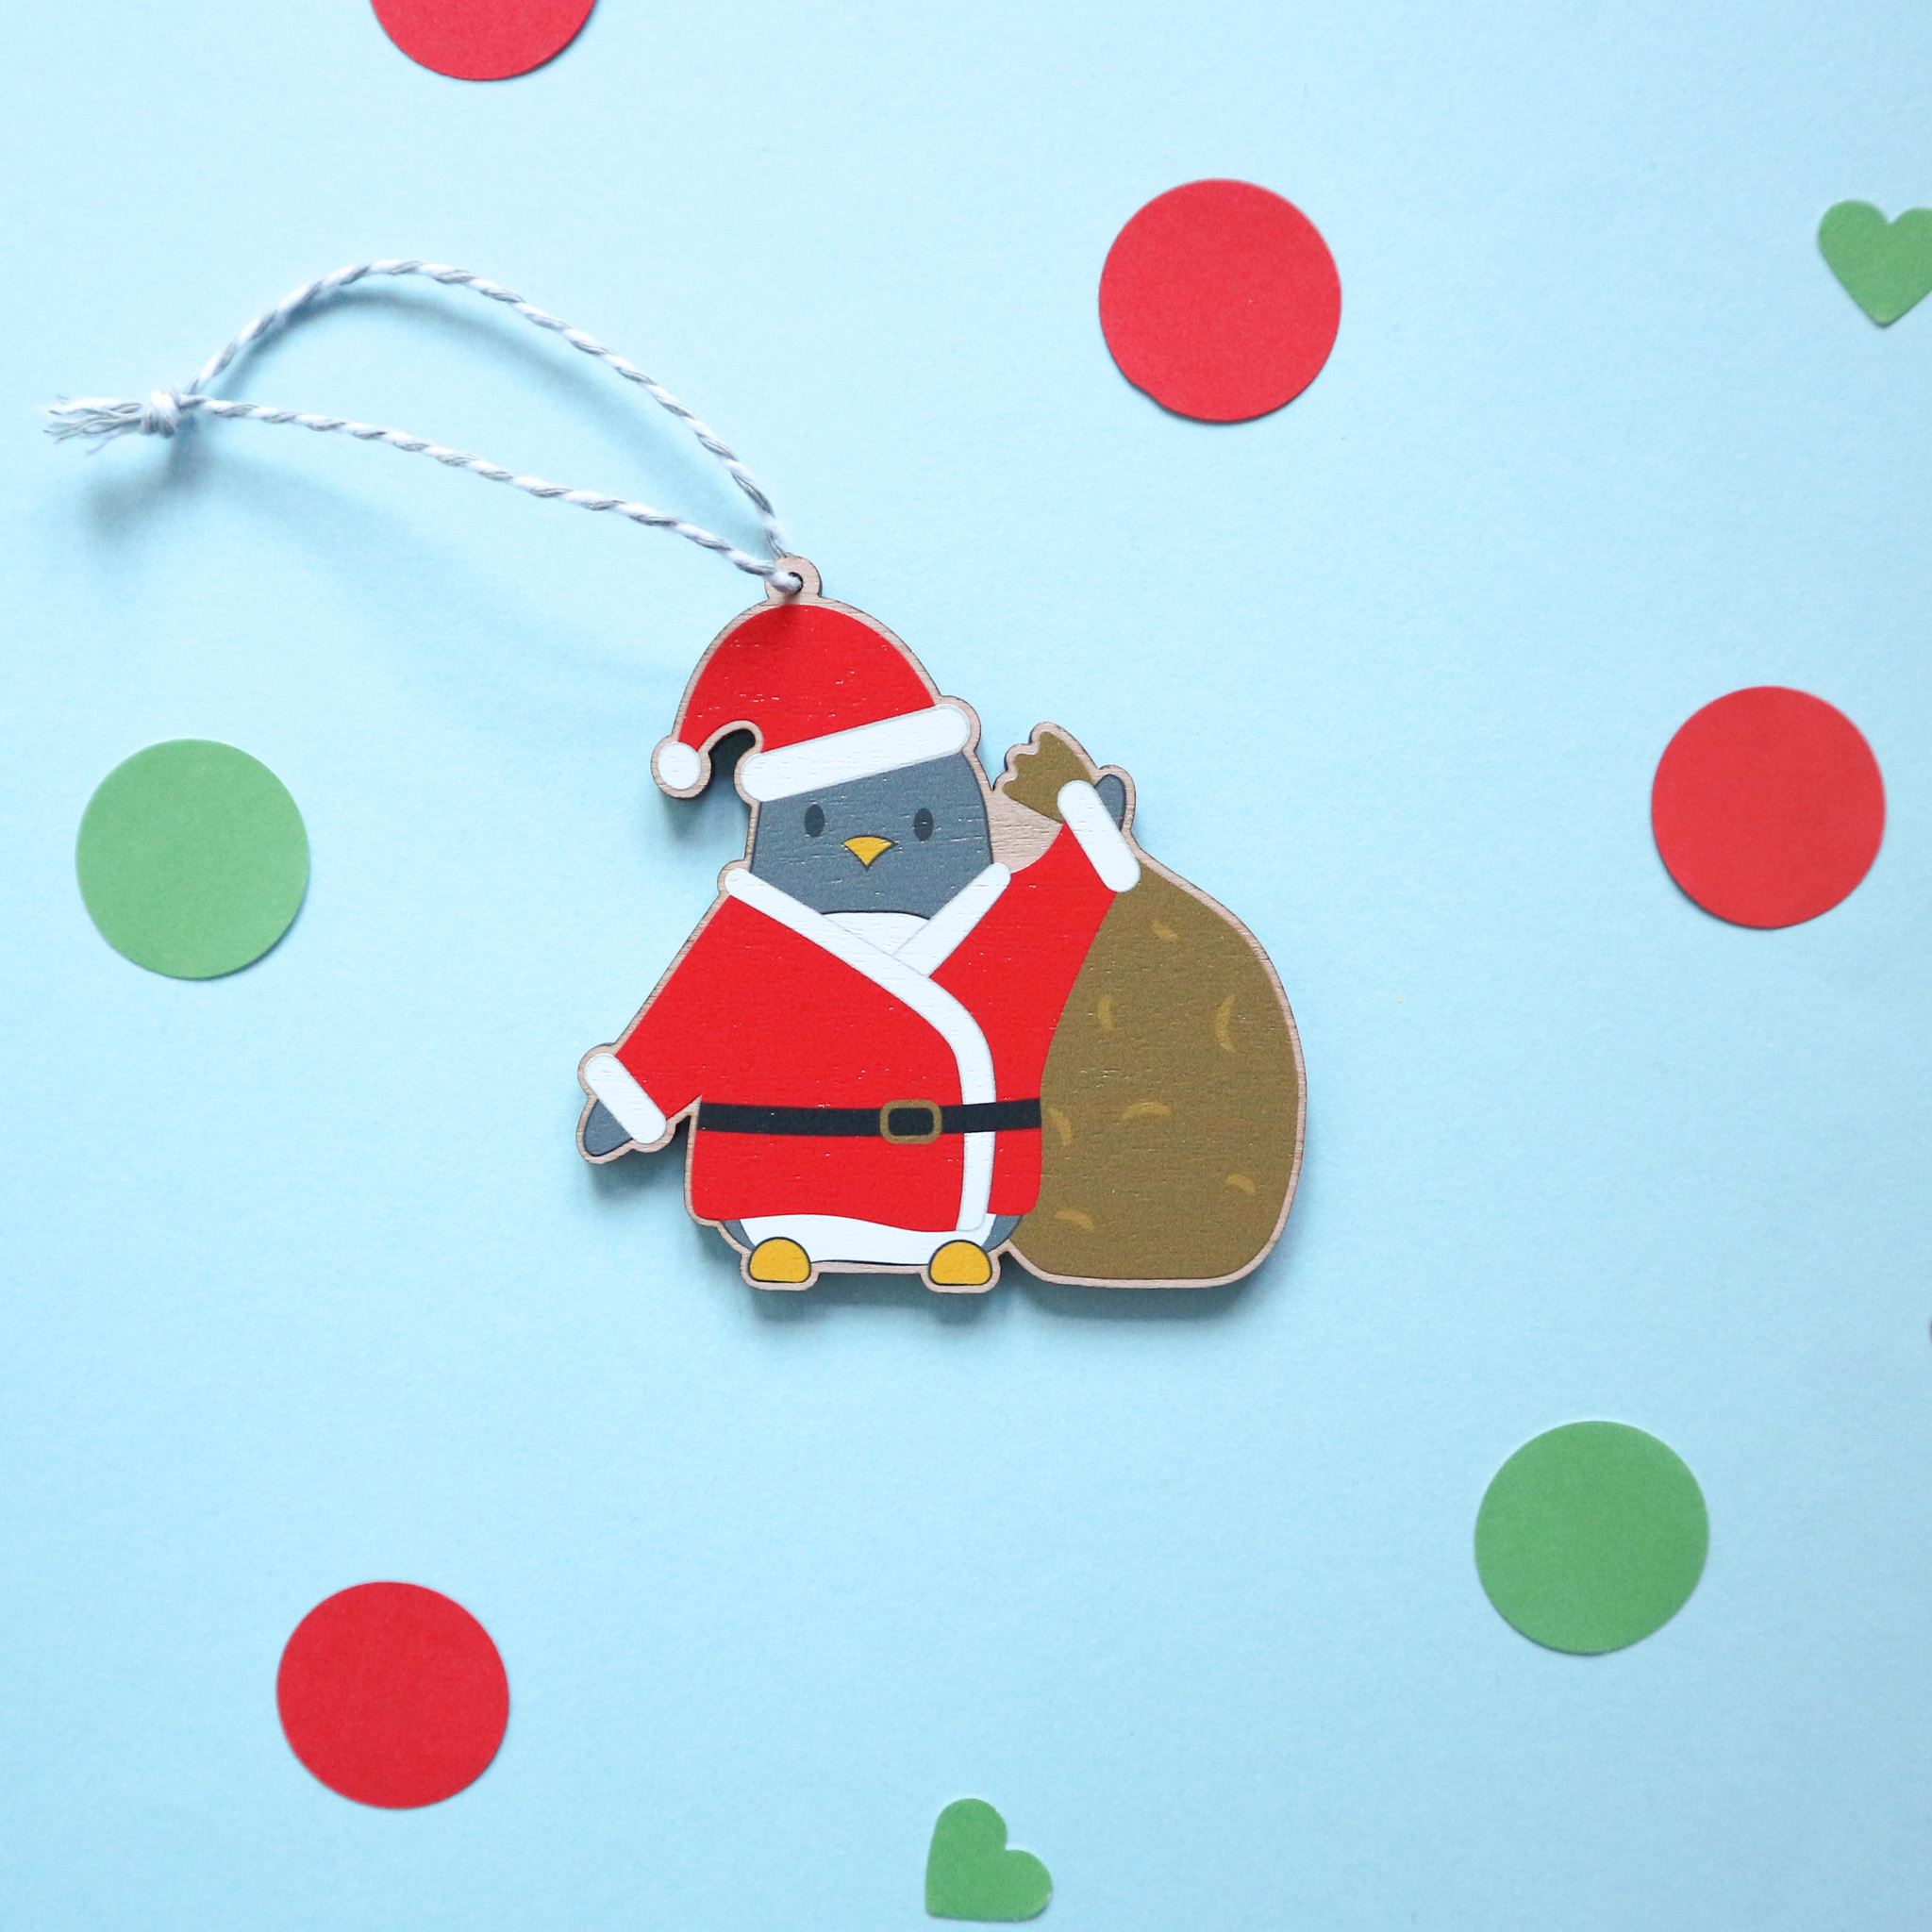 An illustrated wooden Christmas decoration is laying flat against a blue background and surrounded by red and green confetti. The illustration is of a cute penguin dressed as Father Christmas and is holding a sack full of gifts.